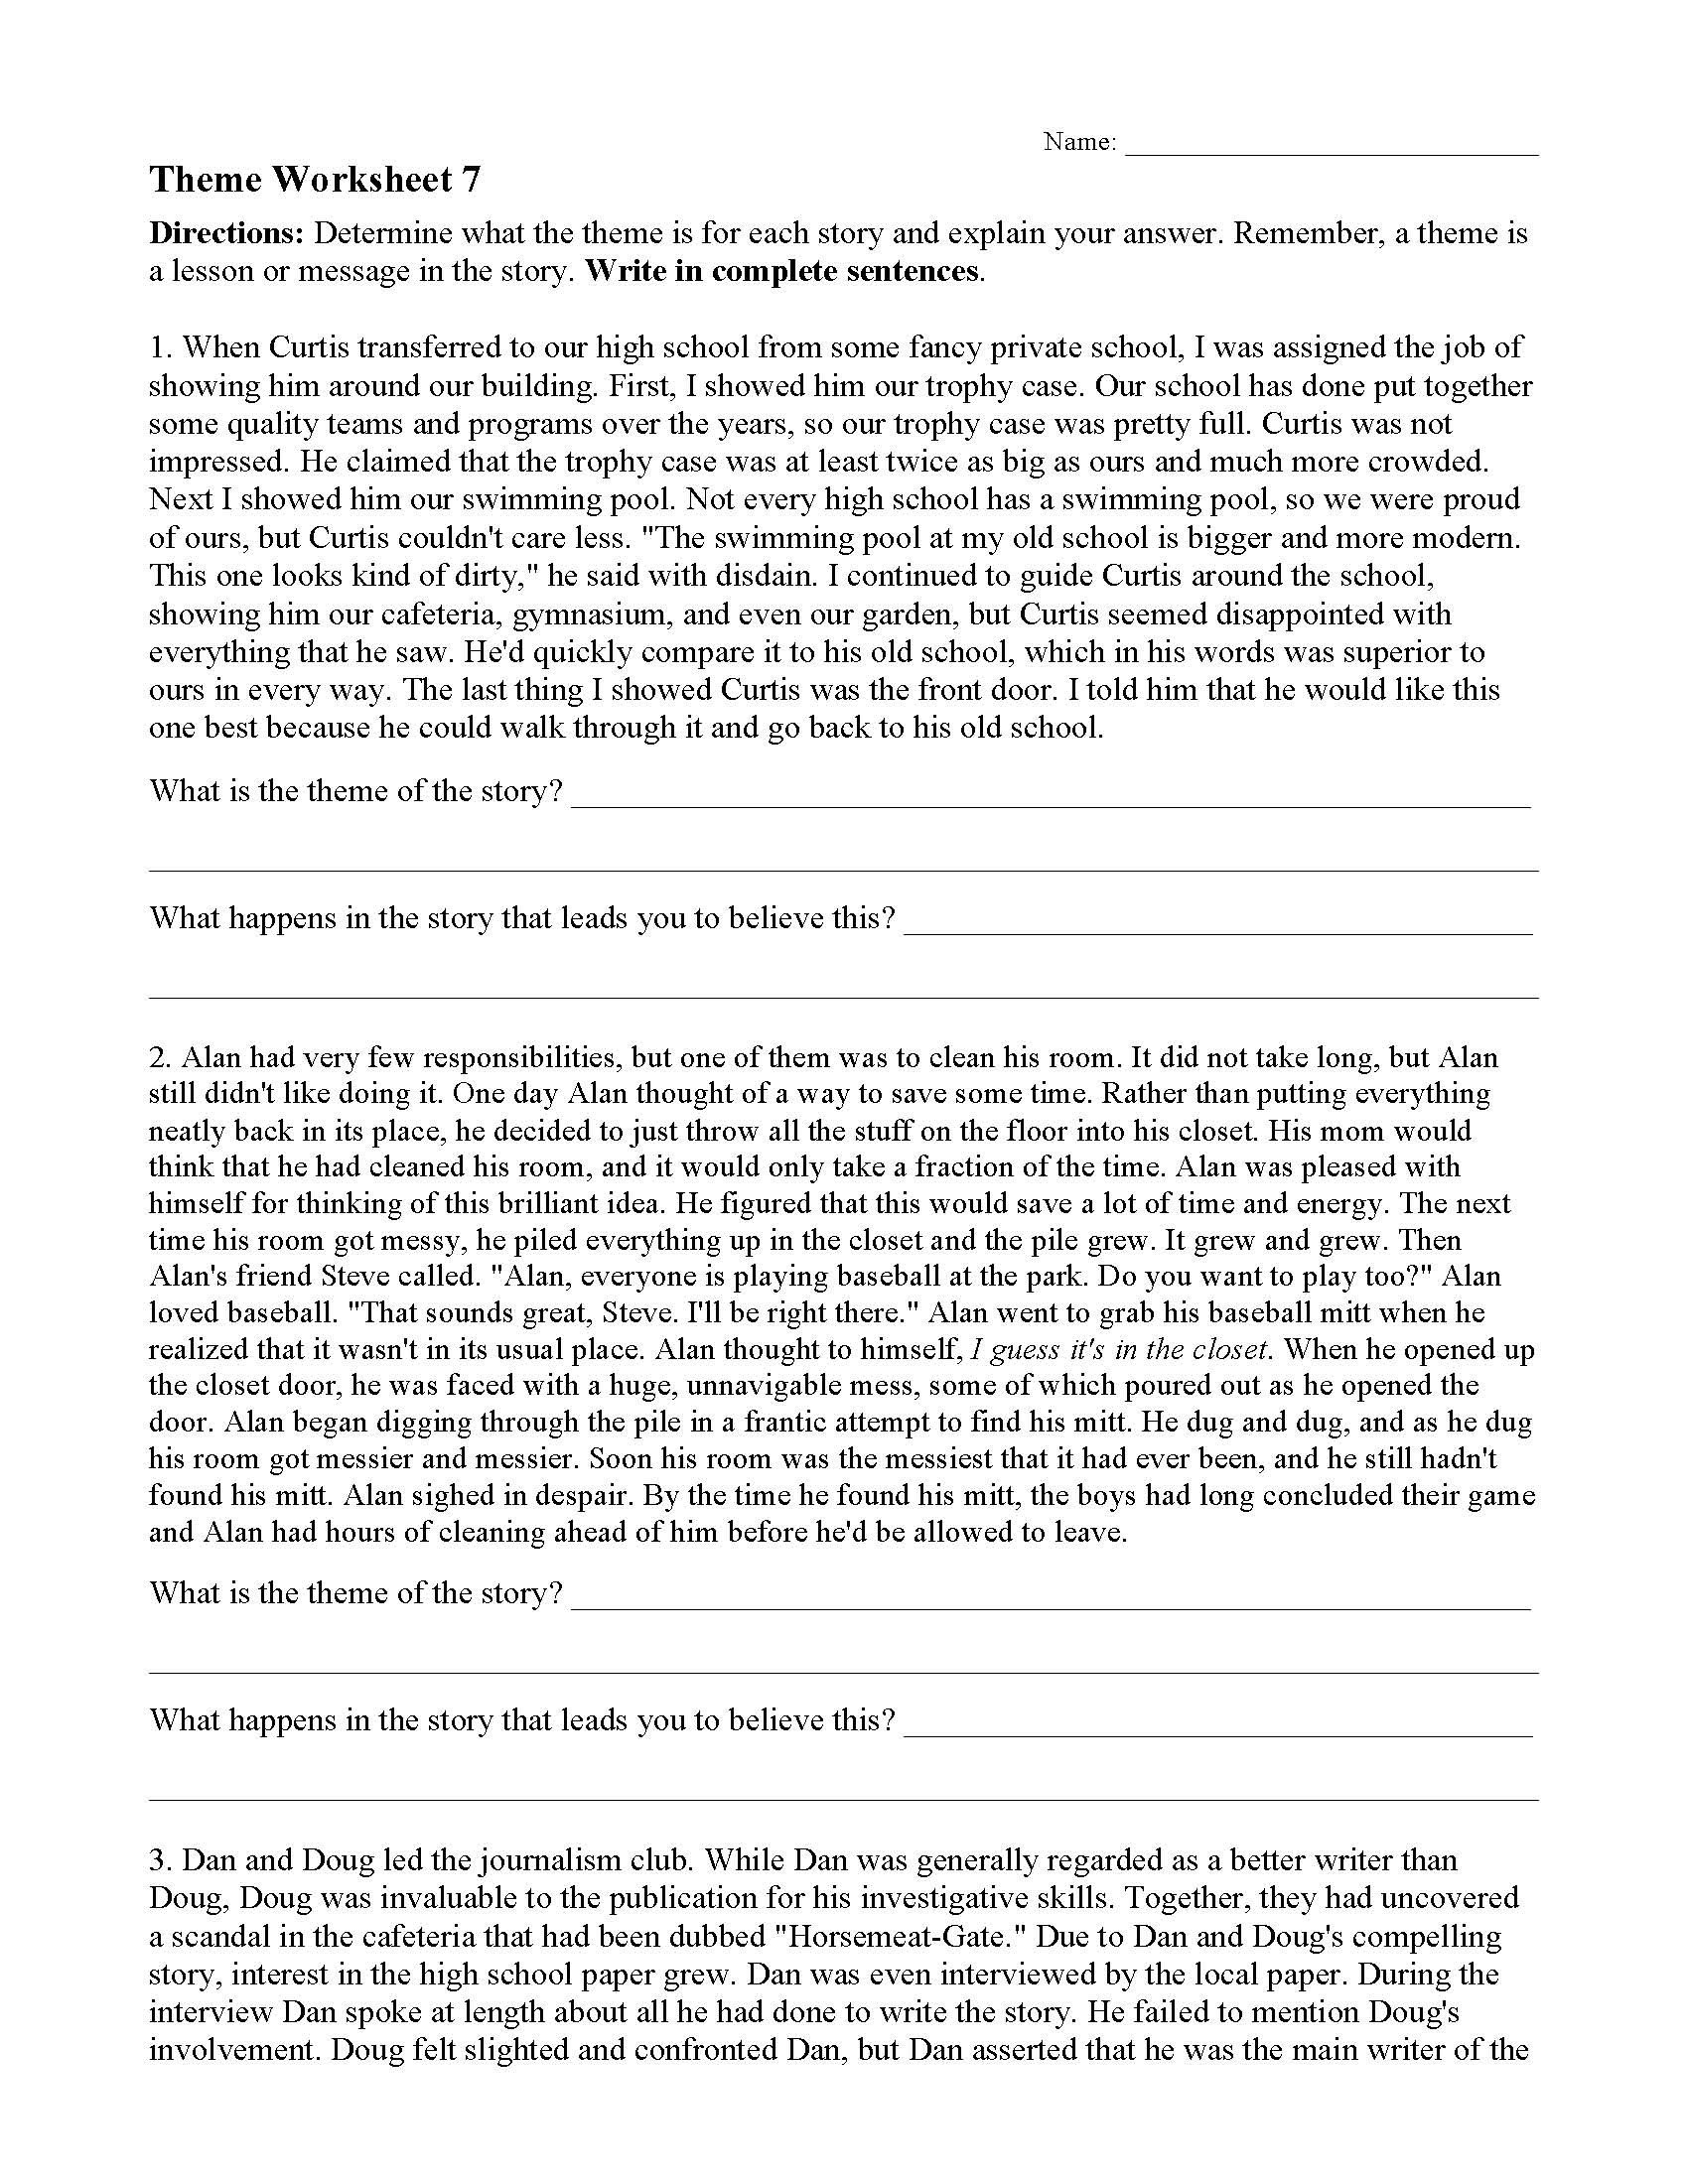 Tone and Mood Worksheet Pdf theme or Author S Message Worksheets